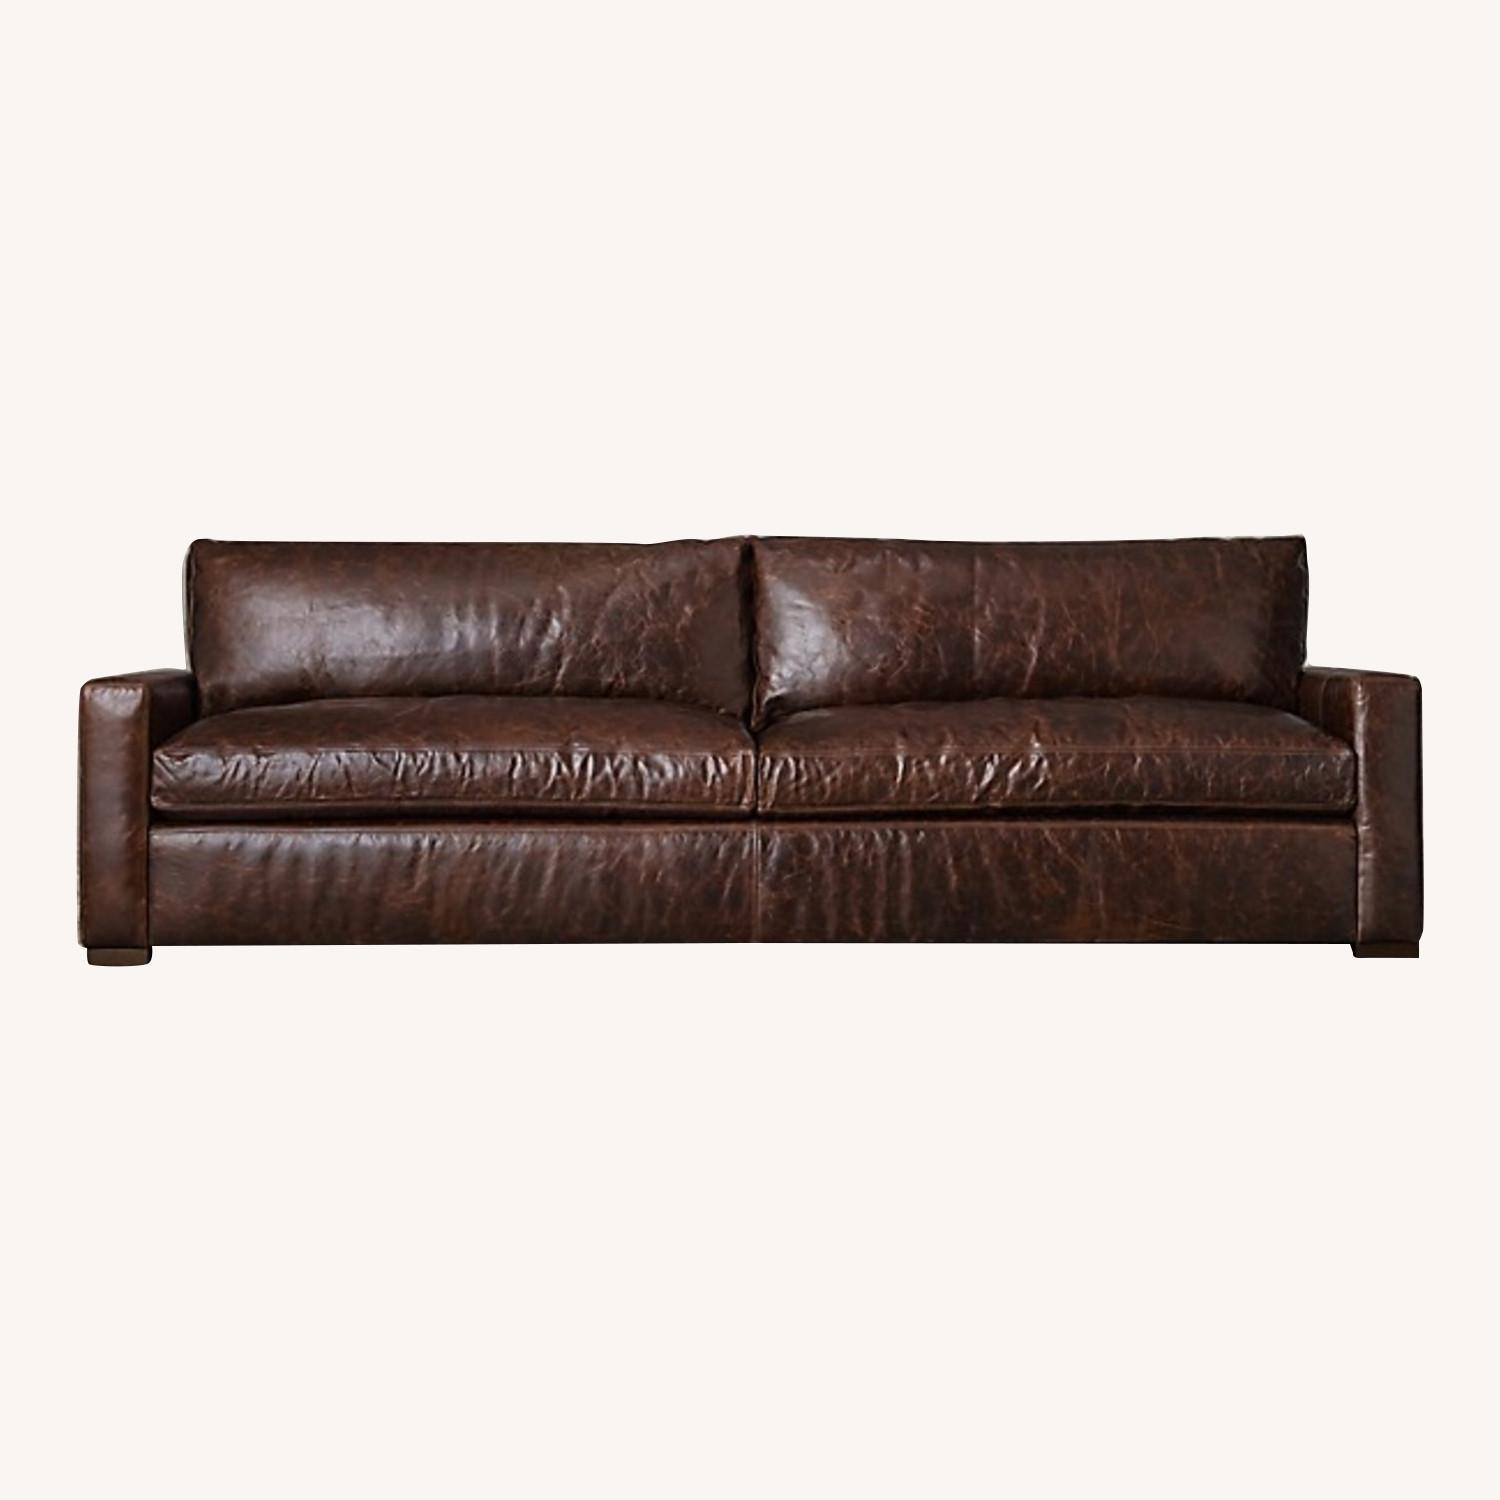 RH Maxwell Leather Sofa